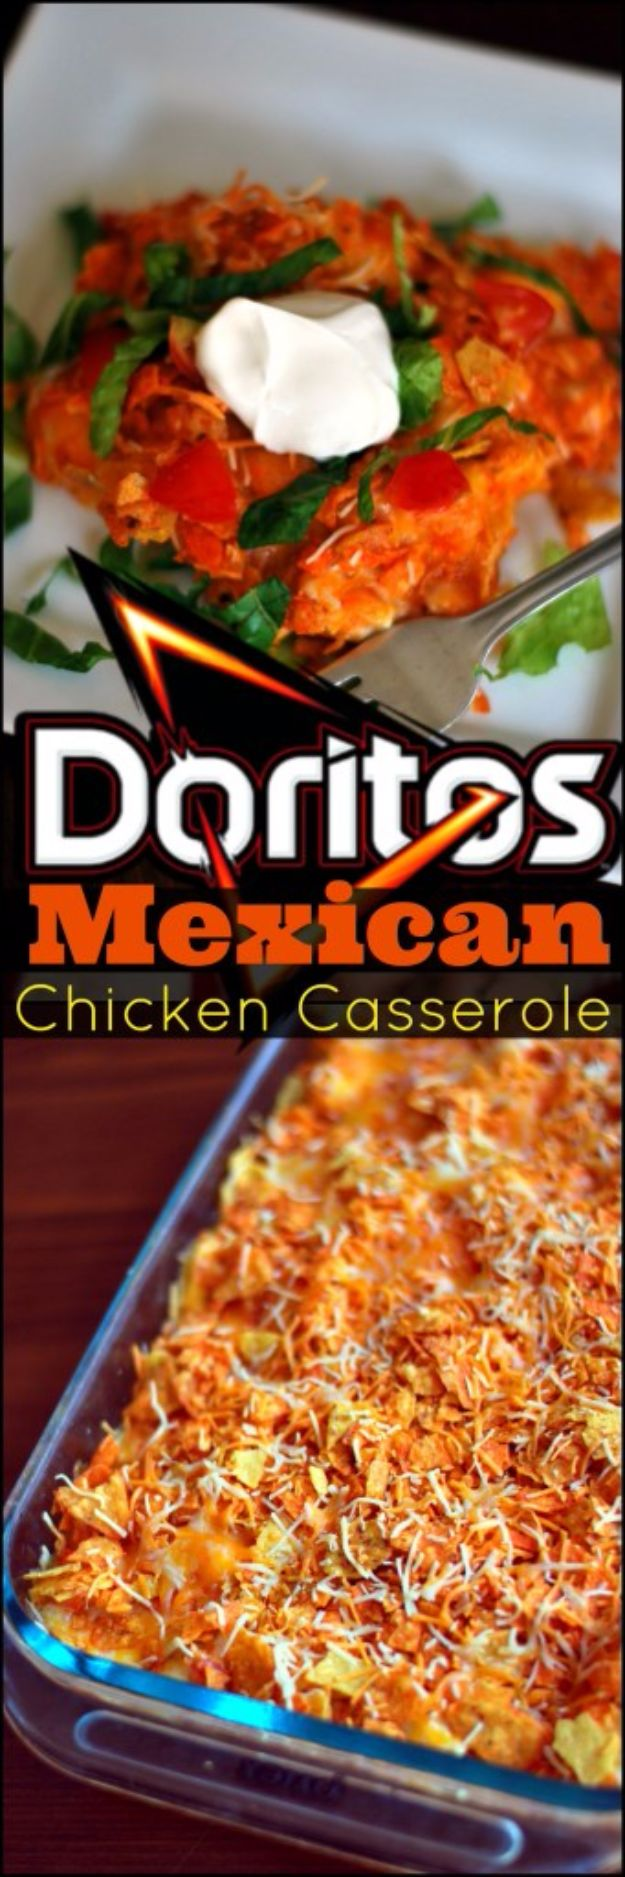 DIY Recipes Made With Doritos - Chicken And Doritos Casserole - Best Dorito Recipes for Casserole, Taco Salad, Chicken Dinners, Beef Casseroles, Nachos, Easy Cool Ranch Meals and Ideas for Dips, Snacks and Kids Recipe Tutorials - Quick Lunch Ideas and Recipes for Parties